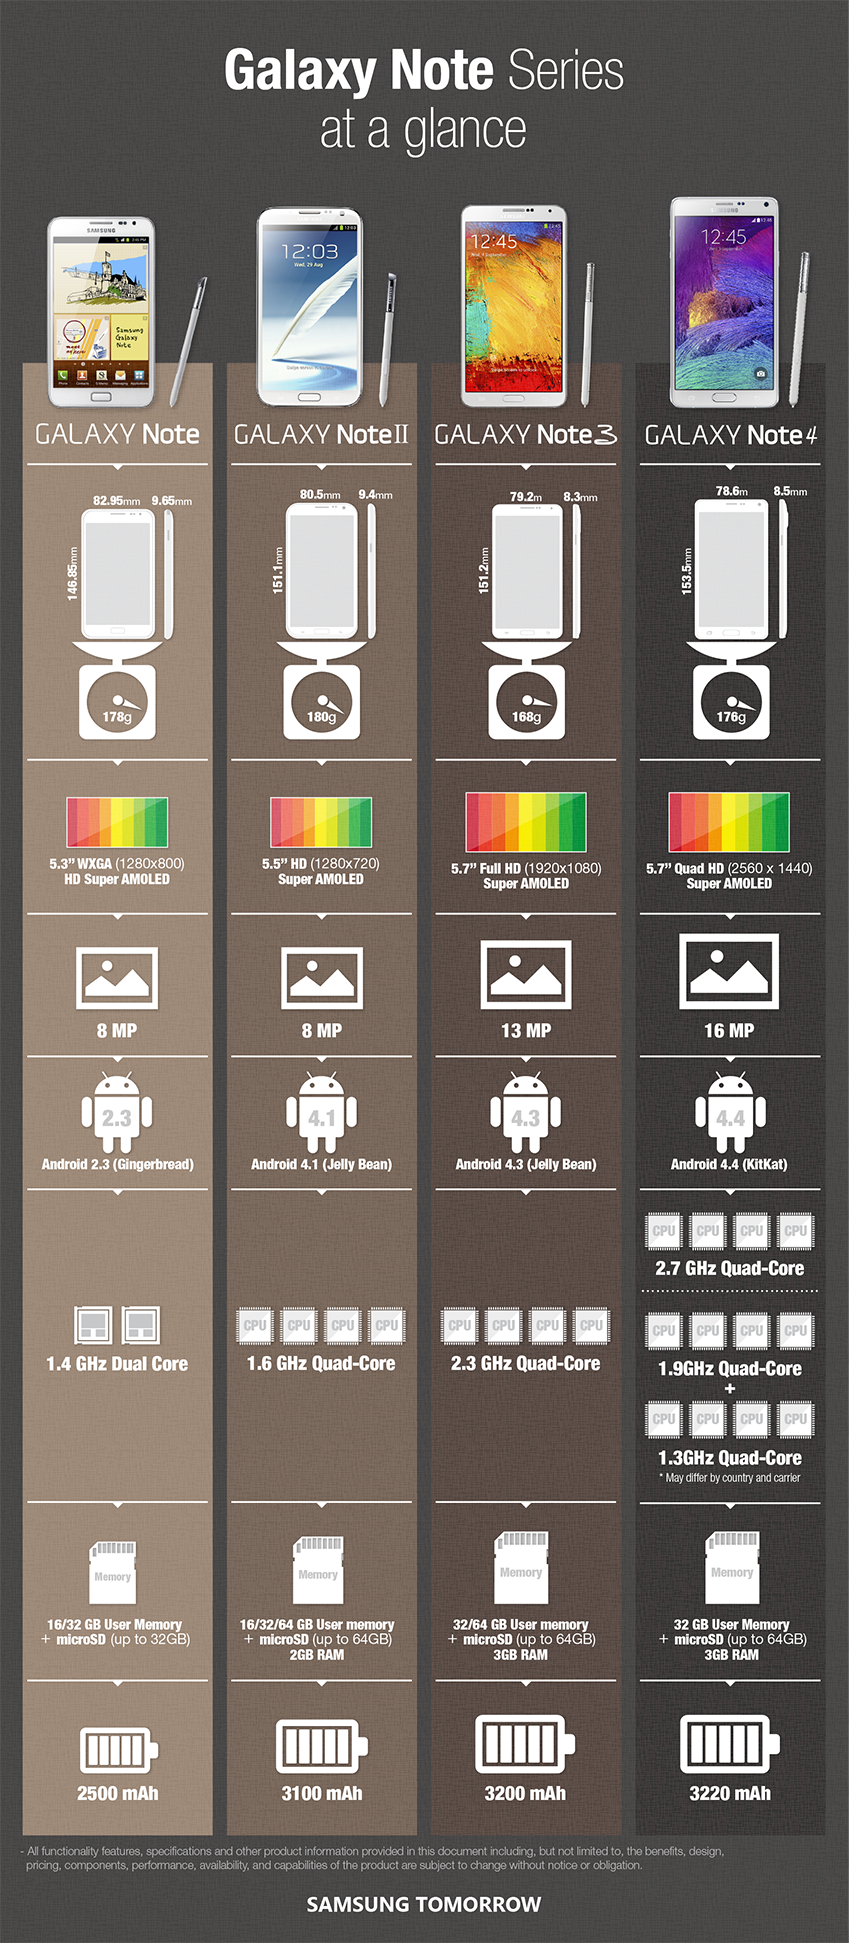 [Infographic] Galaxy Note Series at a glance